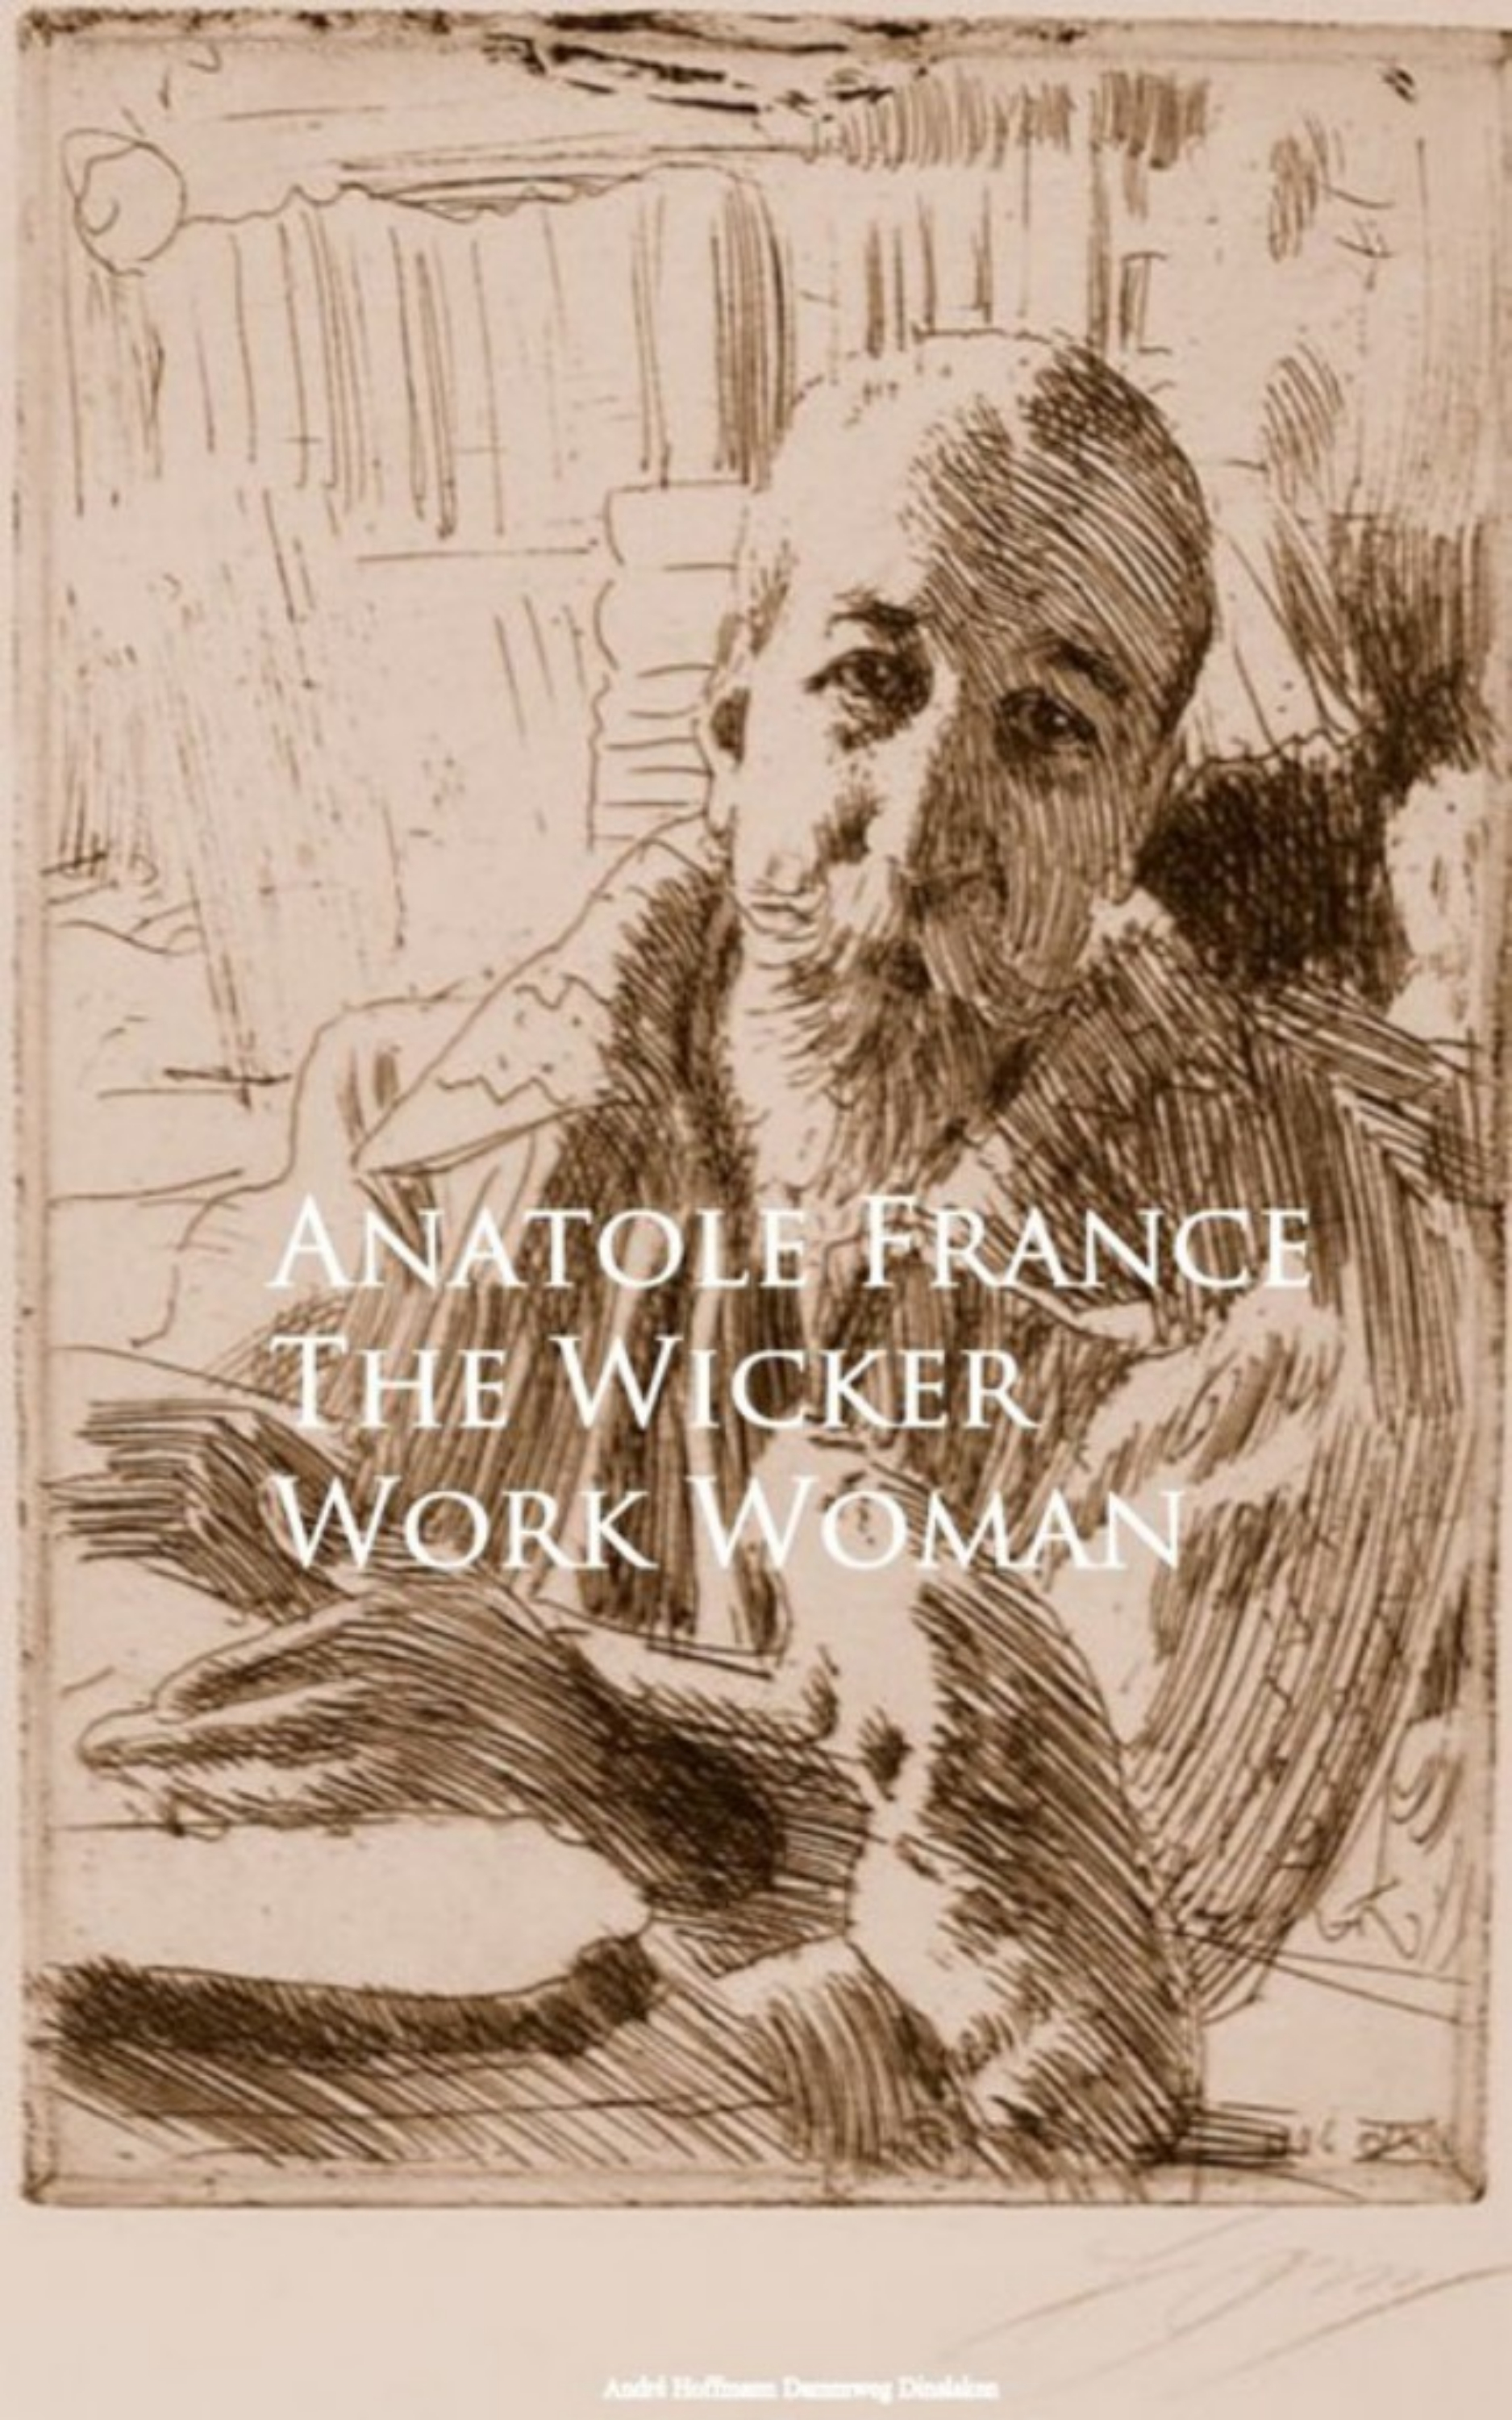 Anatole France The Wicker Work Woman